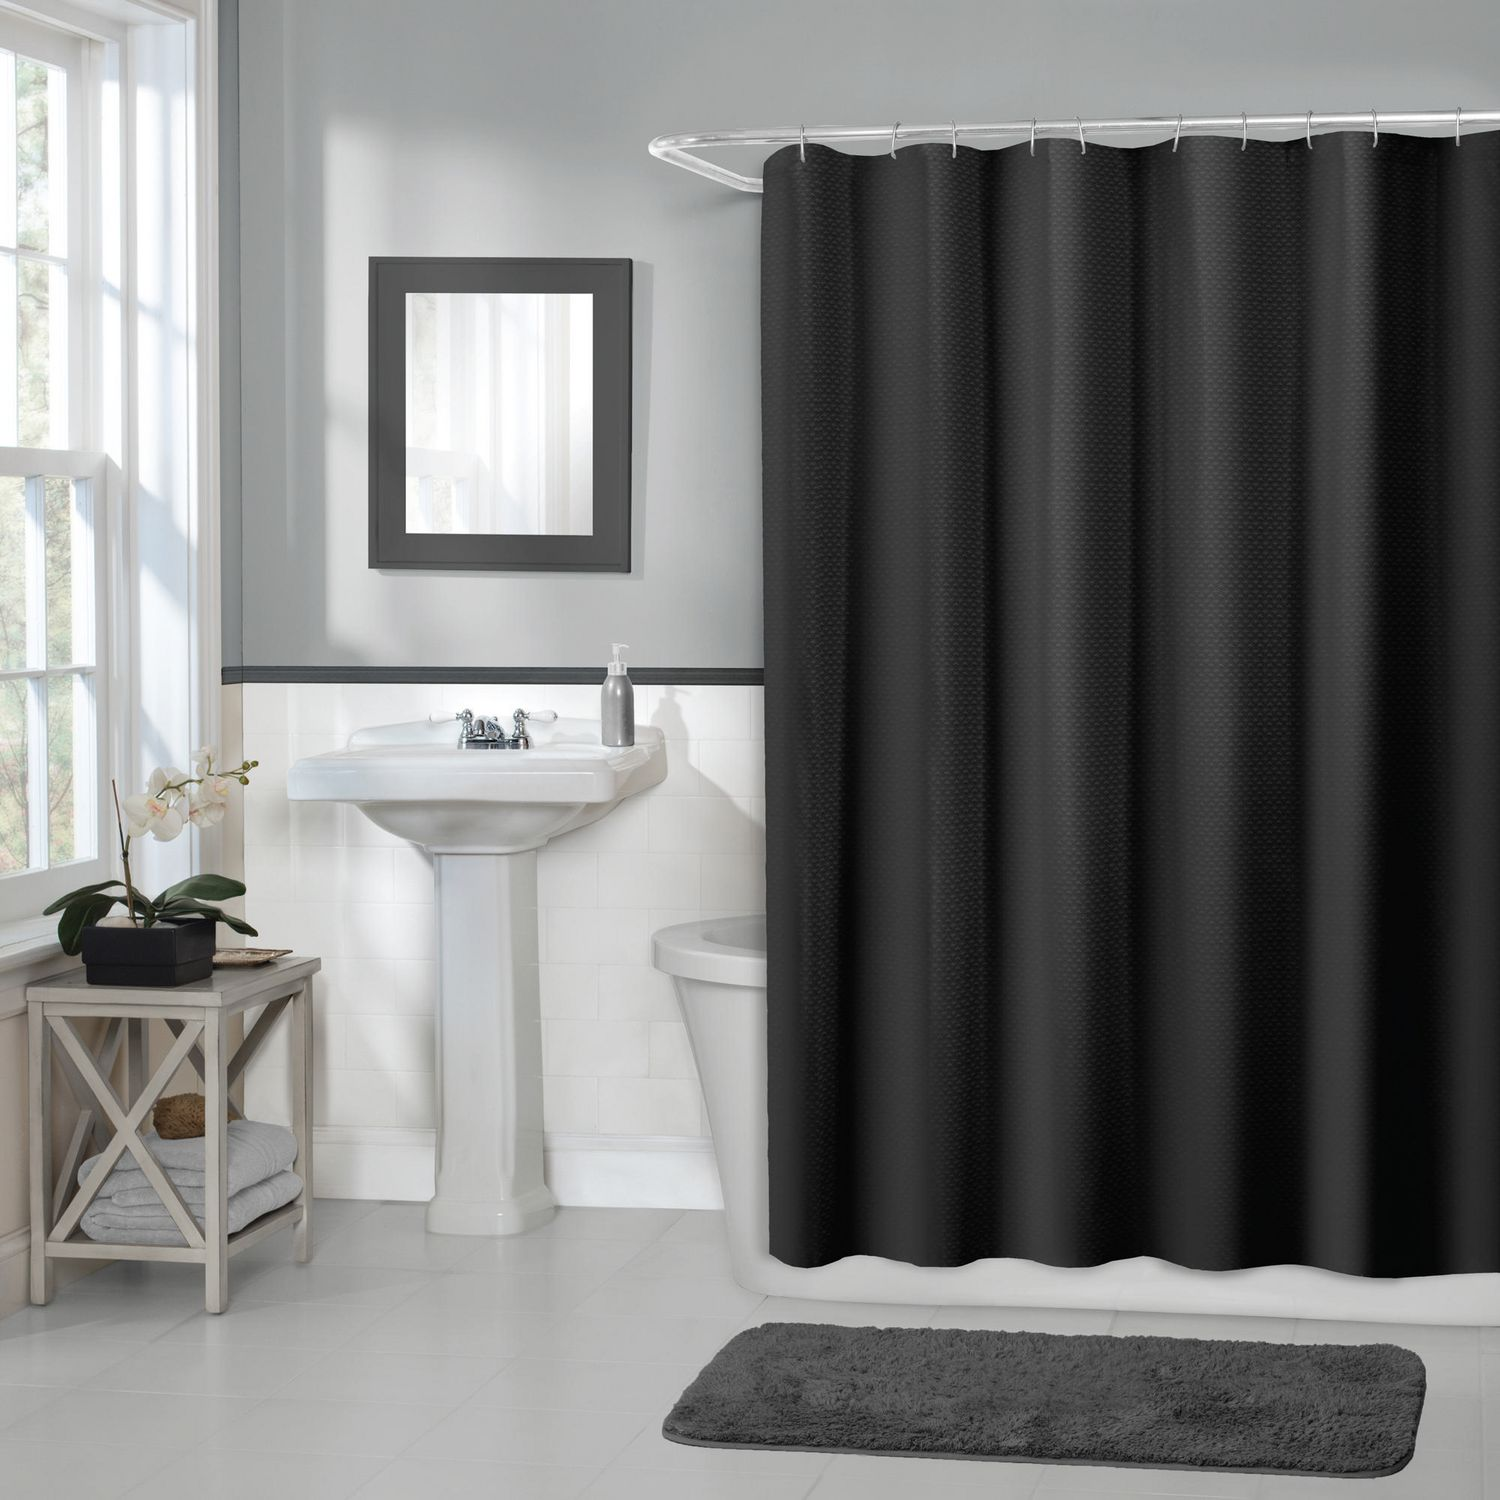 Hometrends Home Trends Waffle Fabric Shower Curtain 70 Inches X 72 Black